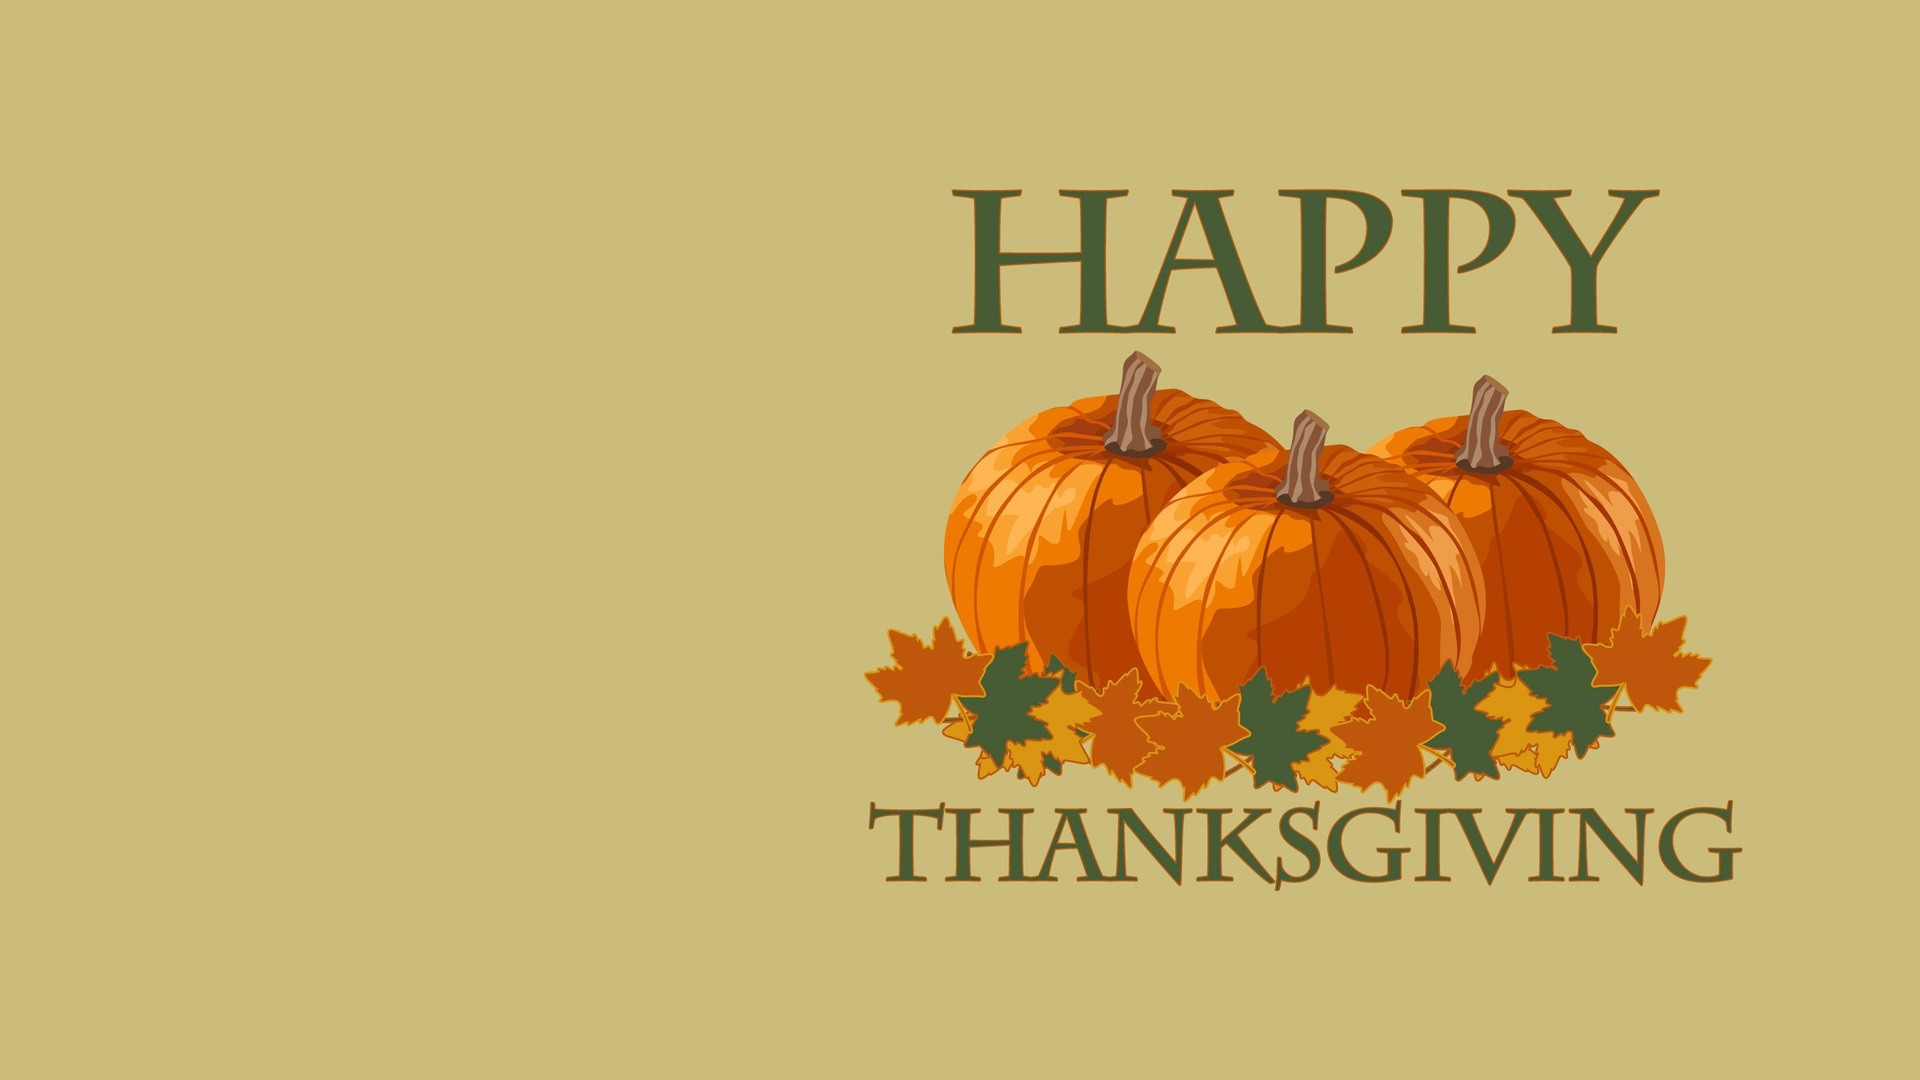 Res: 1920x1080, Thanksgiving wallpapers 2013, 2013 Thanksgiving day greetings .